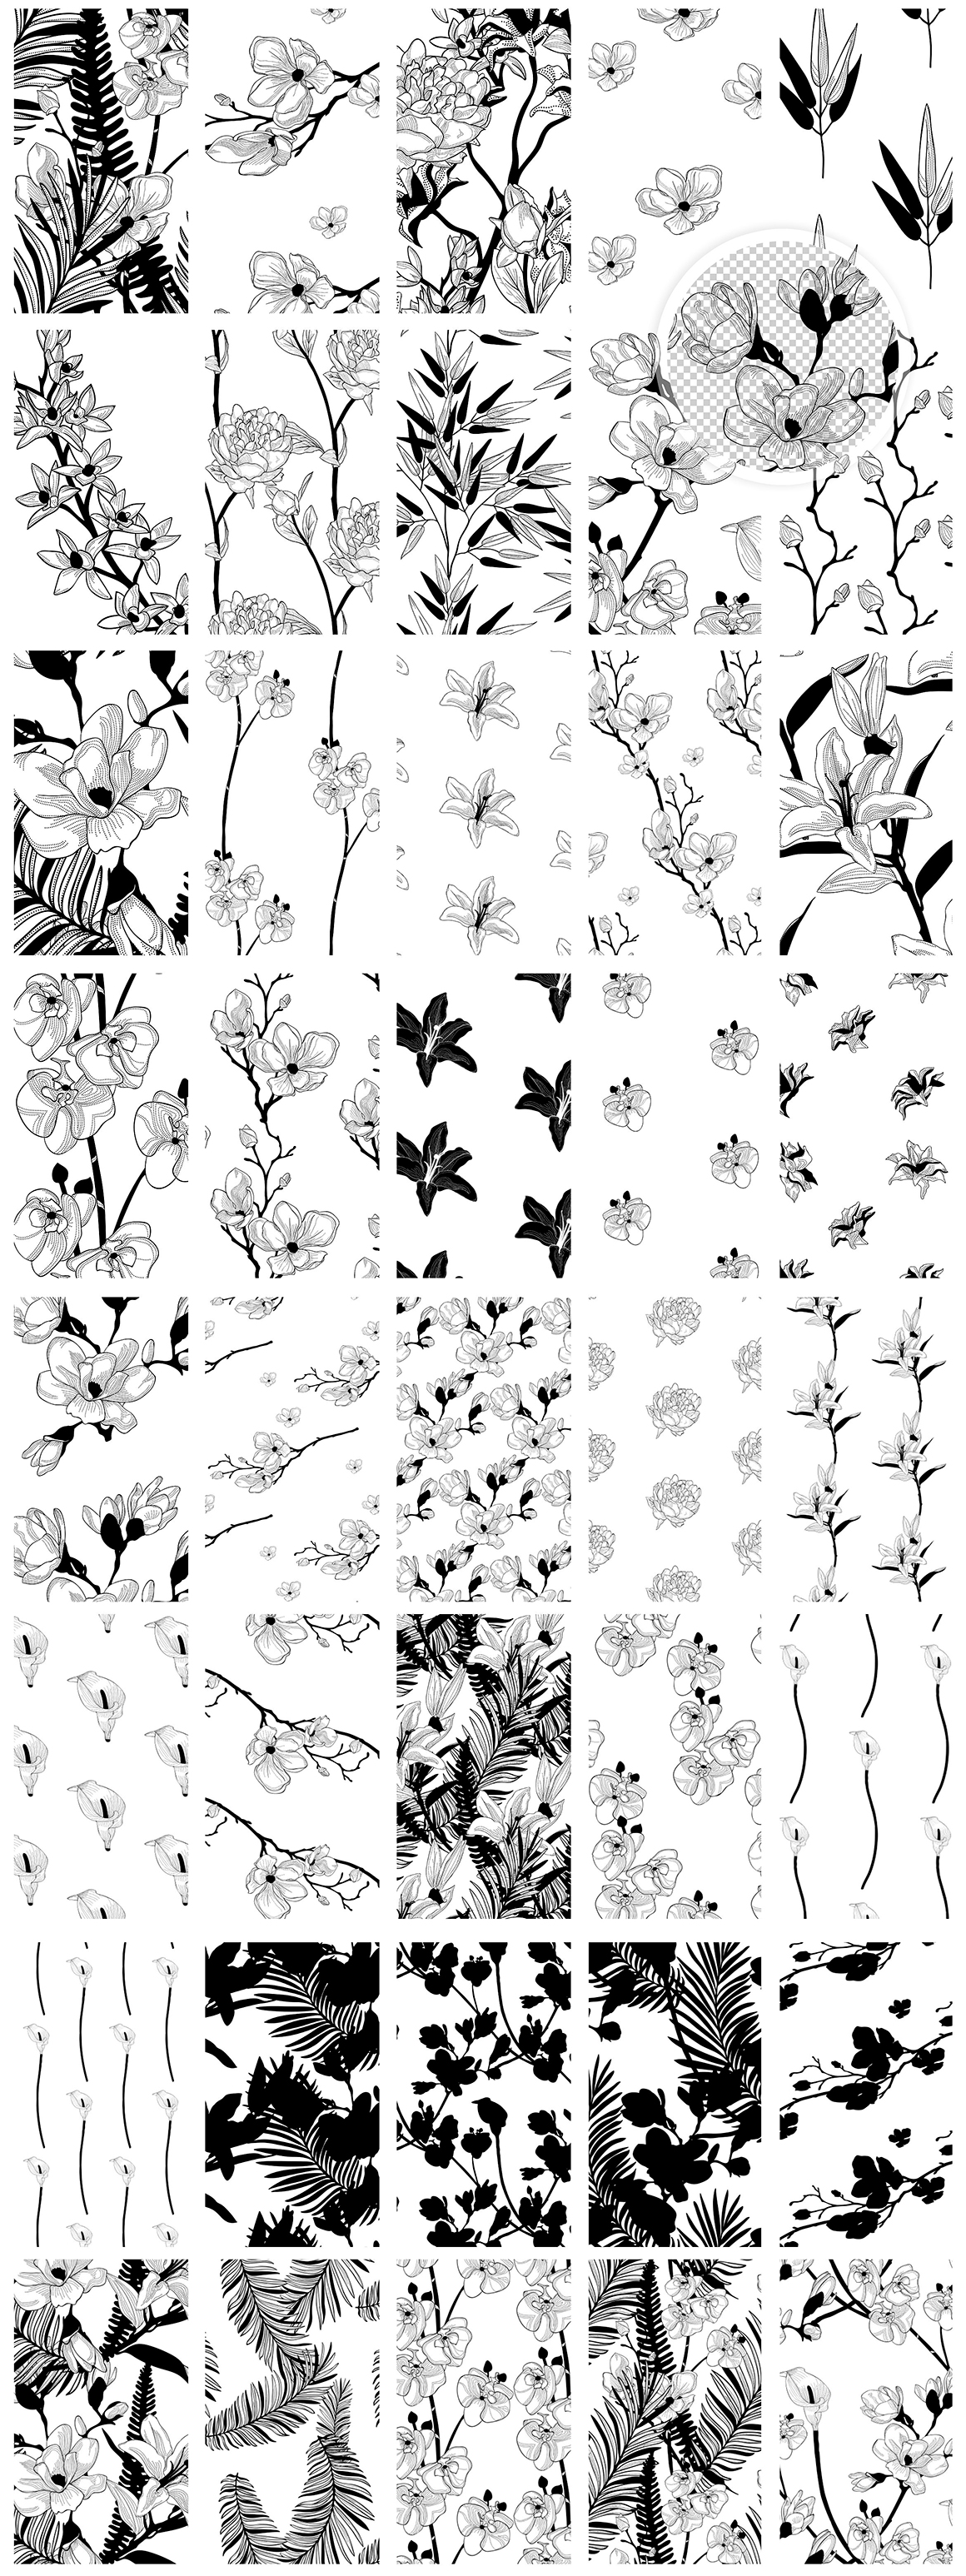 35 Floral Patterns And 8 Instagram Templates